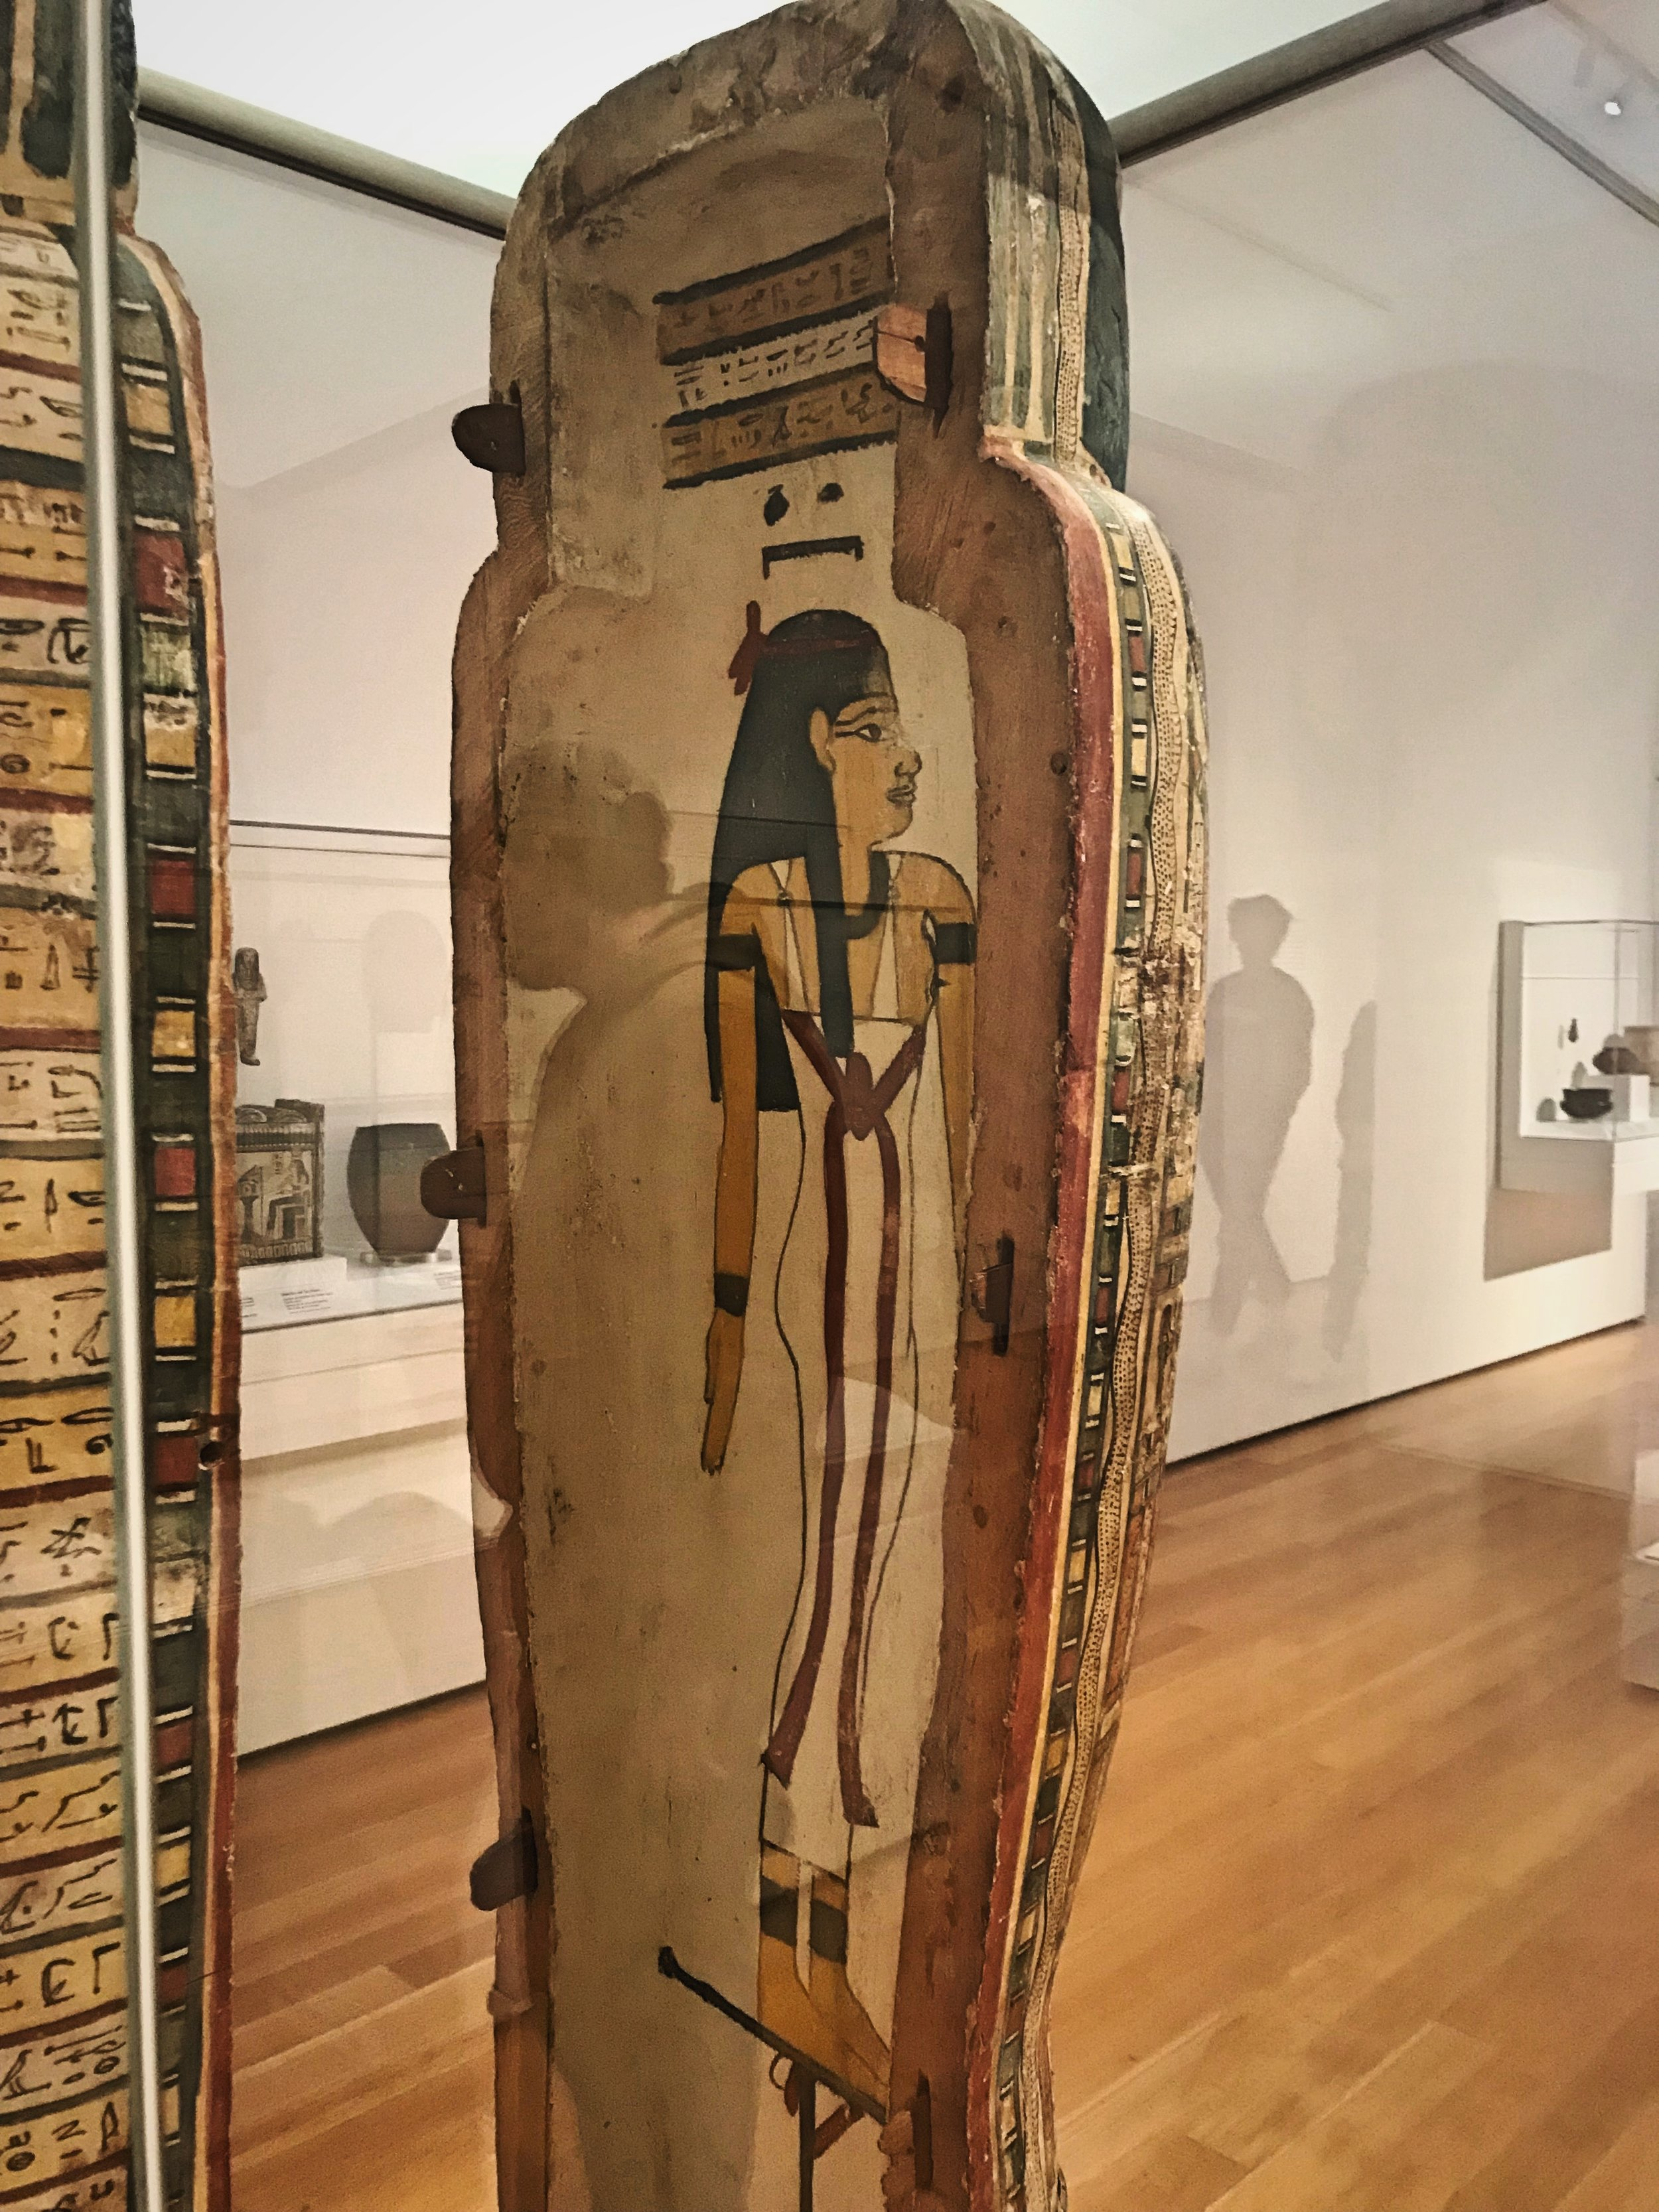 The artwork at the North Carolina Museum of Art includes many antiquities.